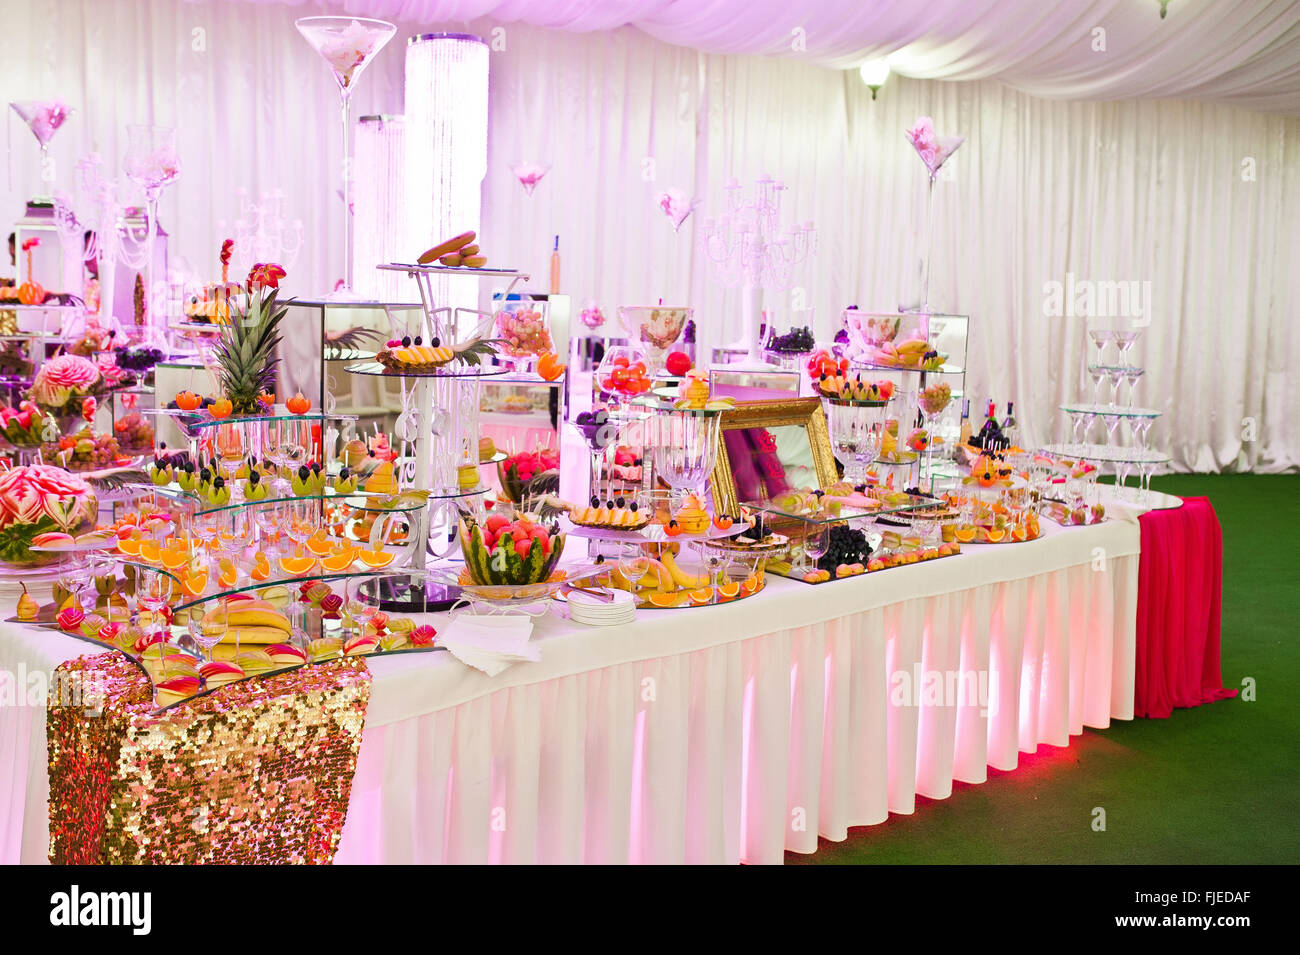 Awesome Wedding Reception Of Food And Drink With Various